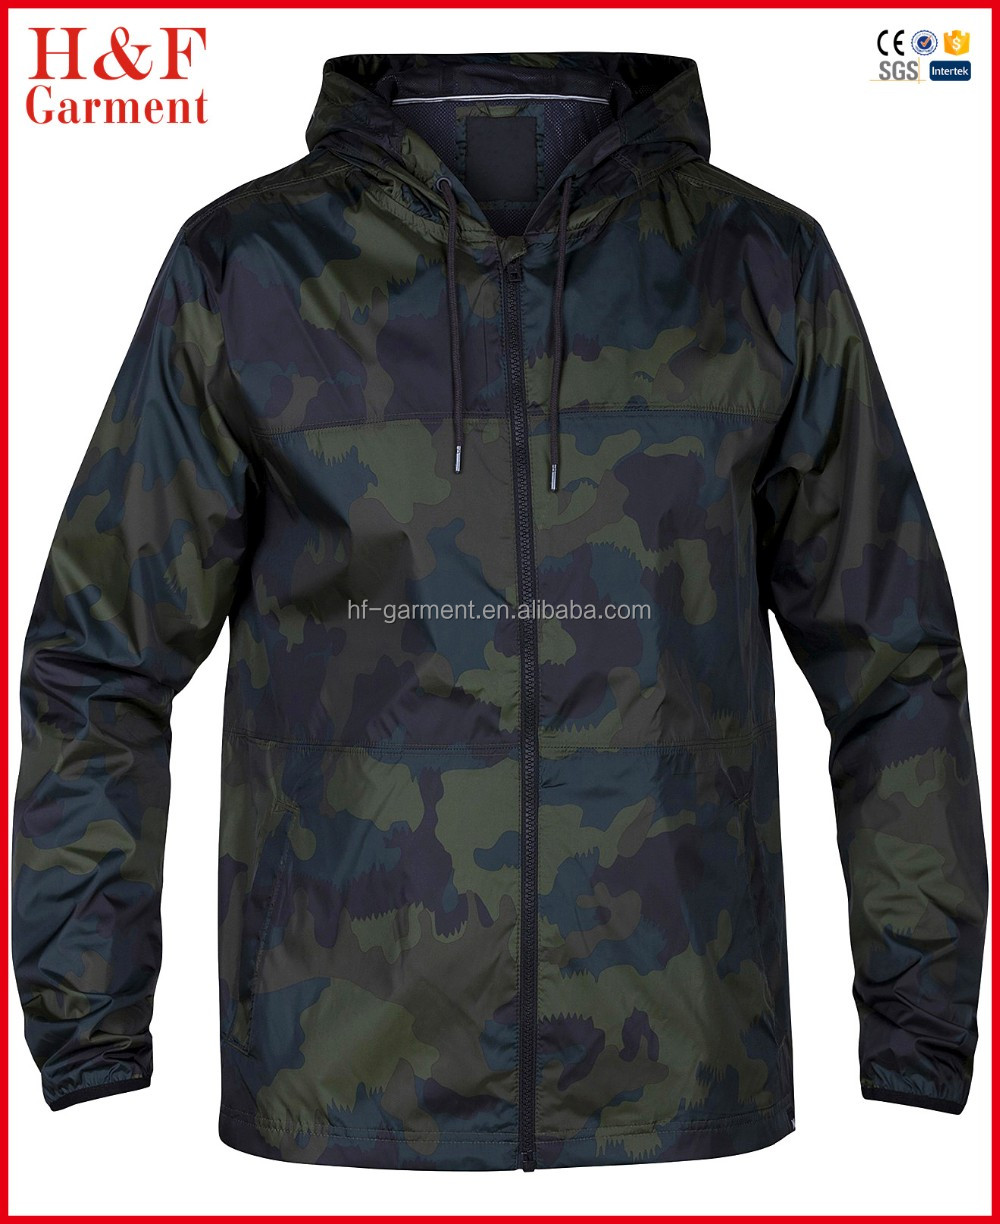 H&F chothes out wear running mens camouflage jacket